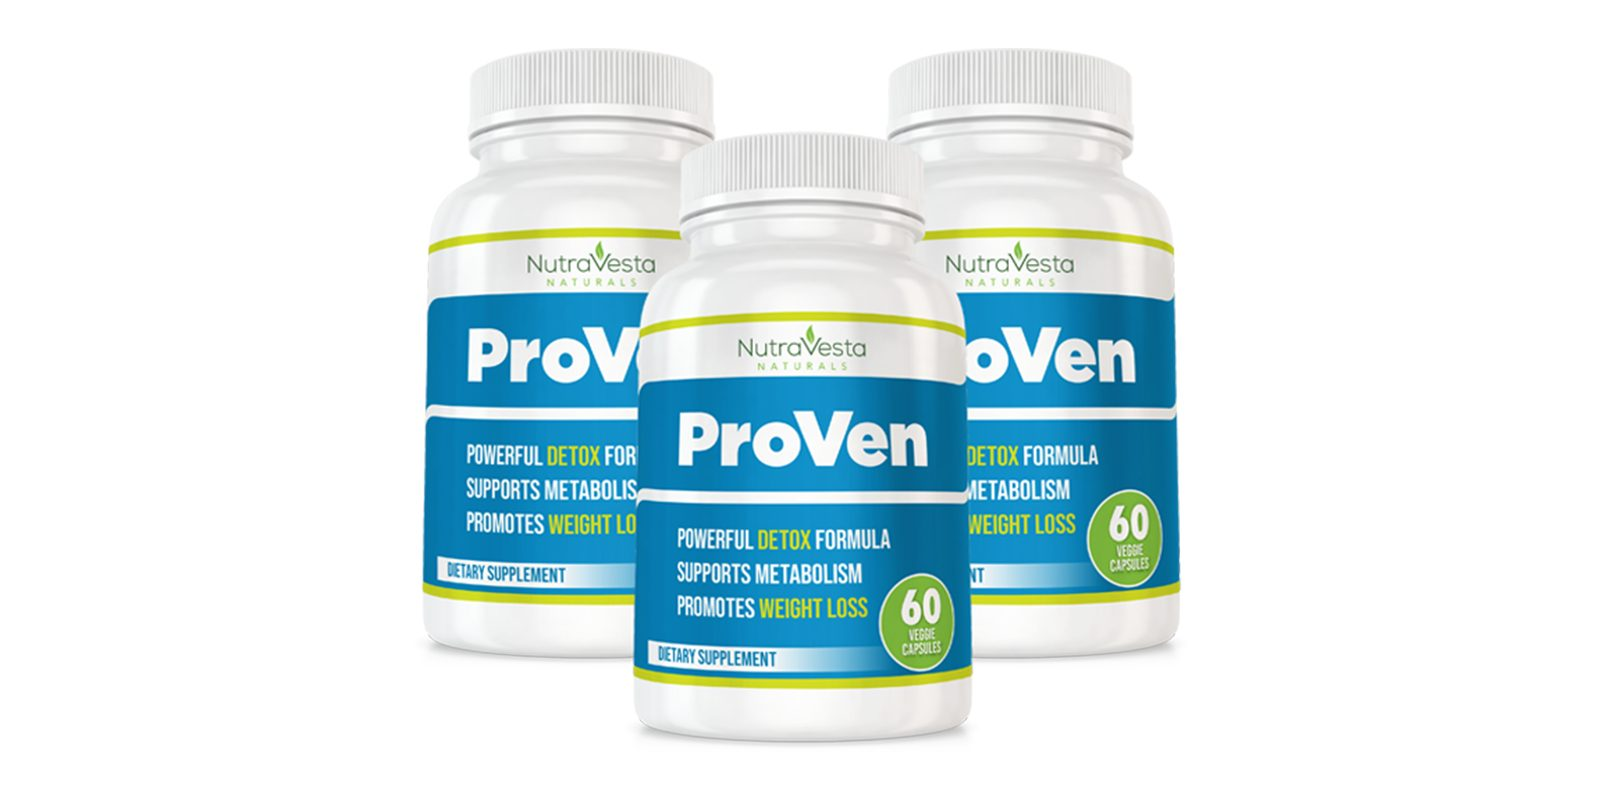 Proven-Plus-Reviews